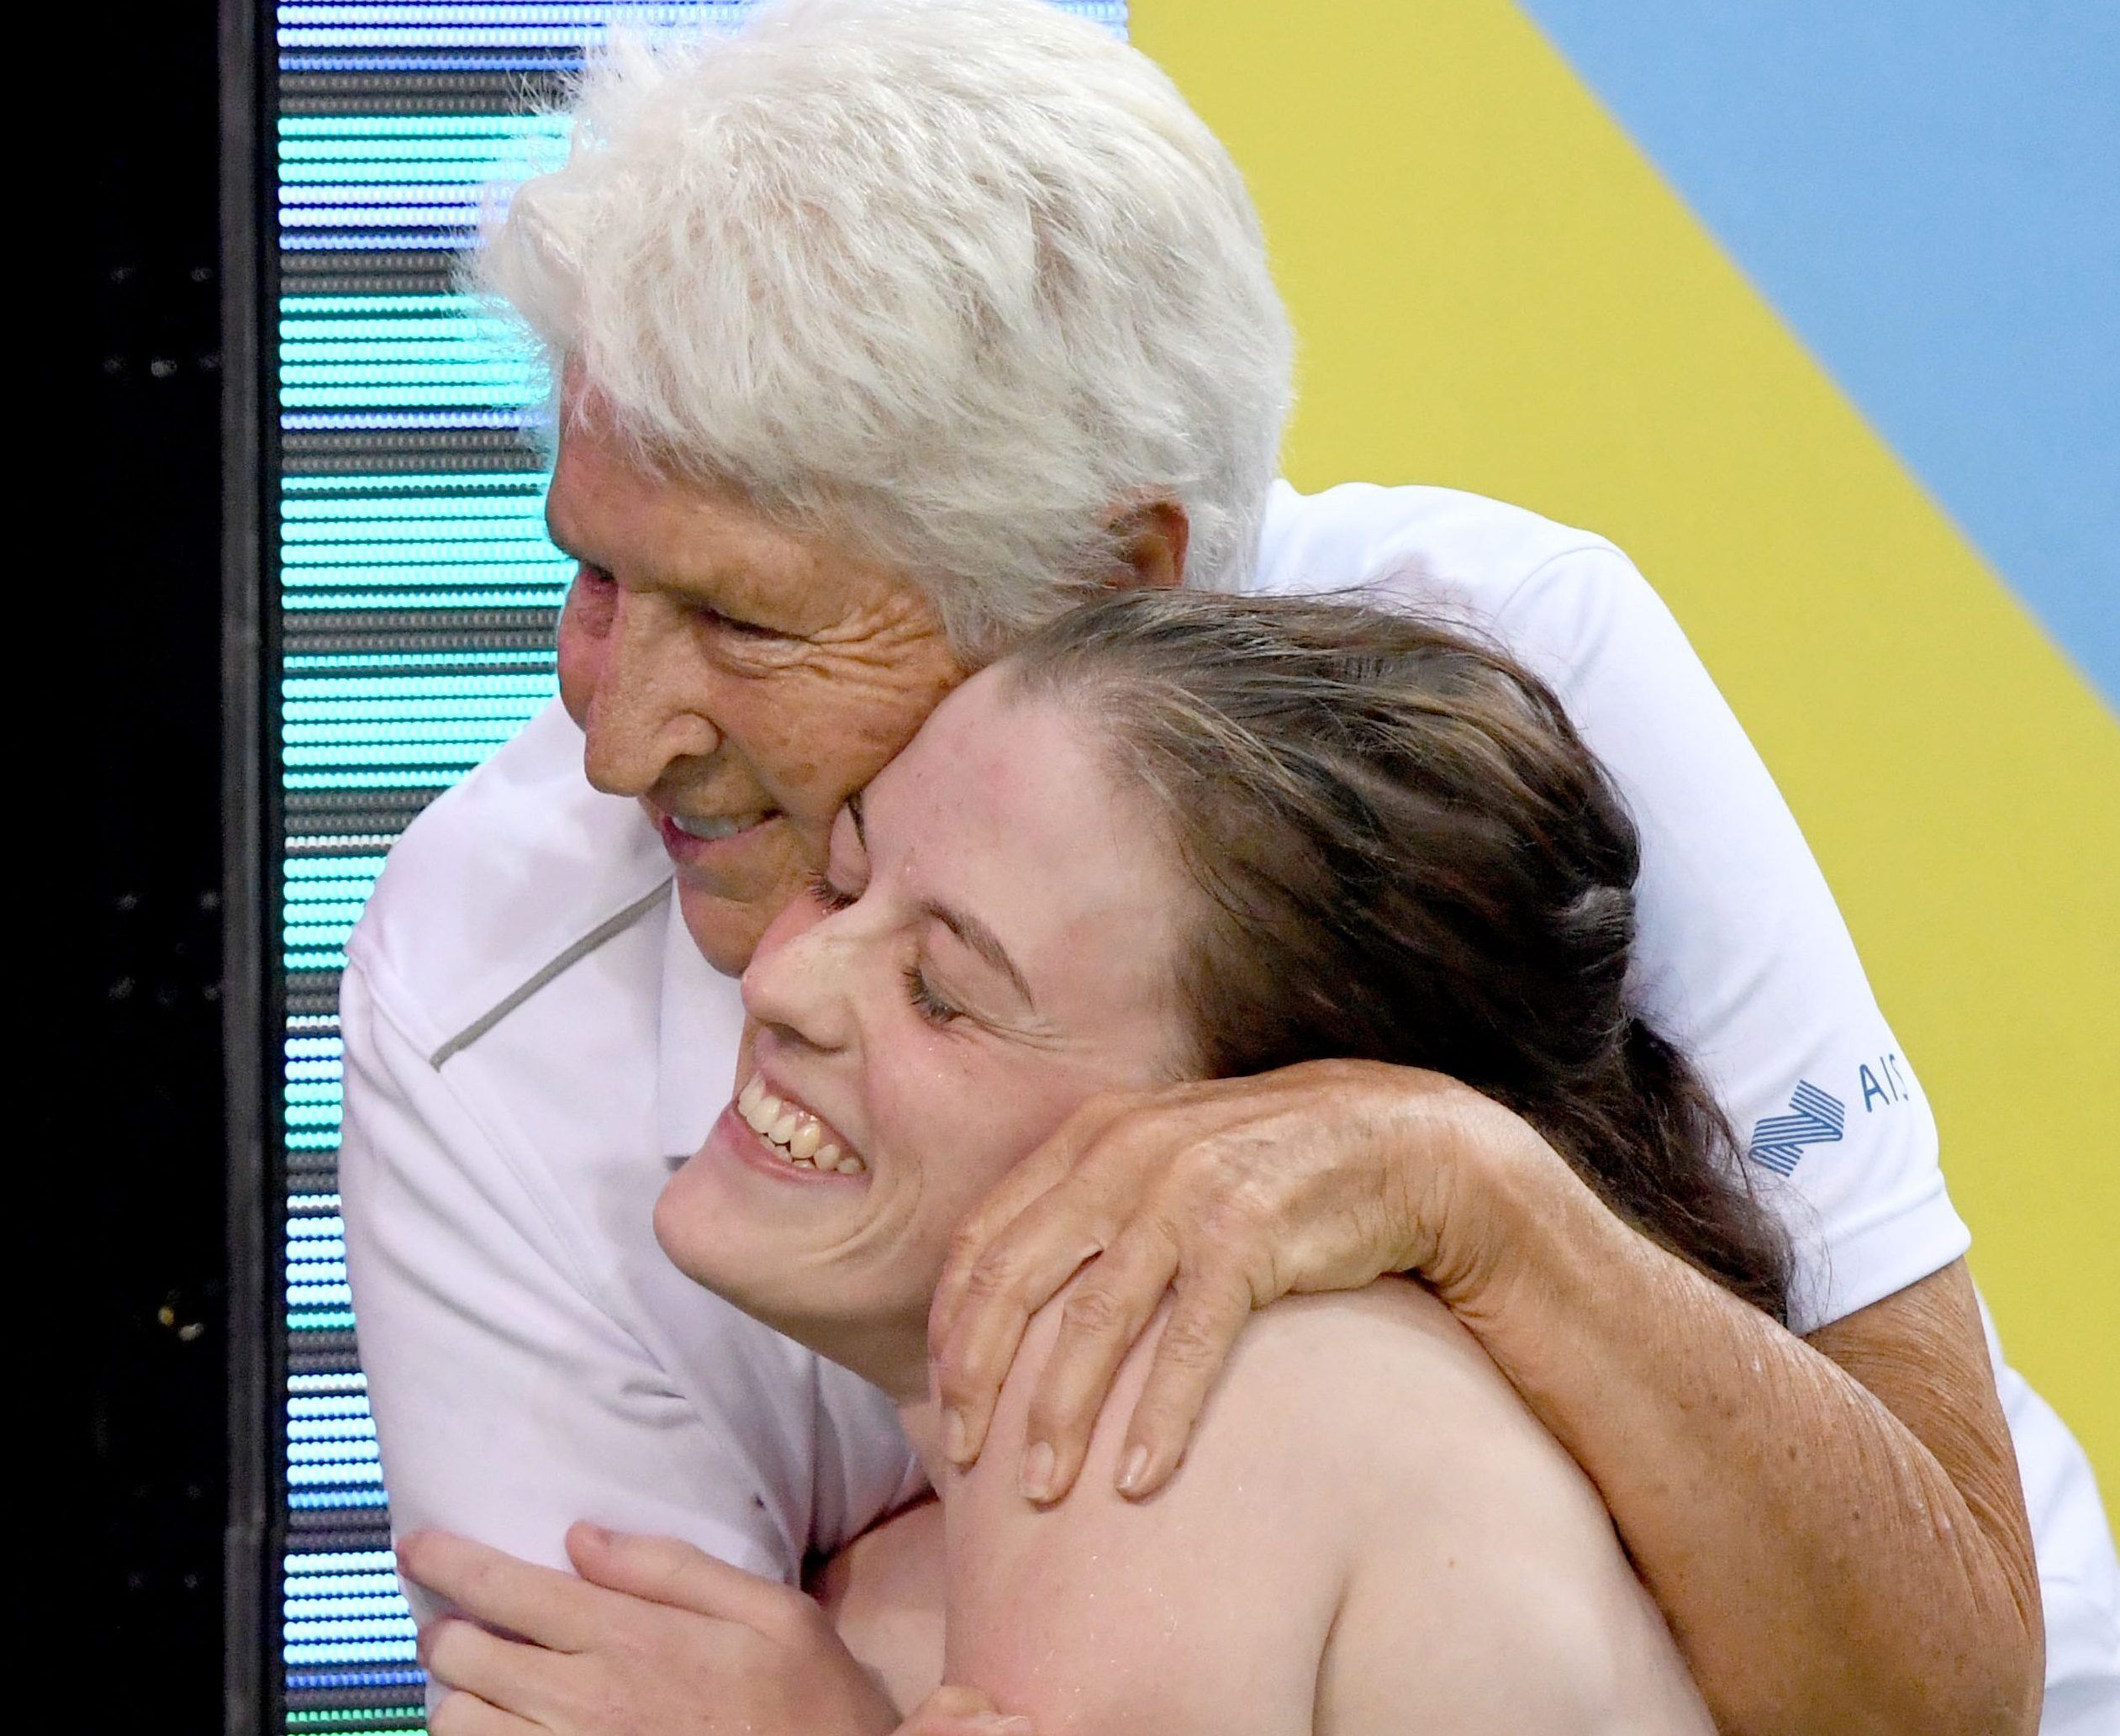 Watson to lead a team of 20 to Para-swimming World Championships